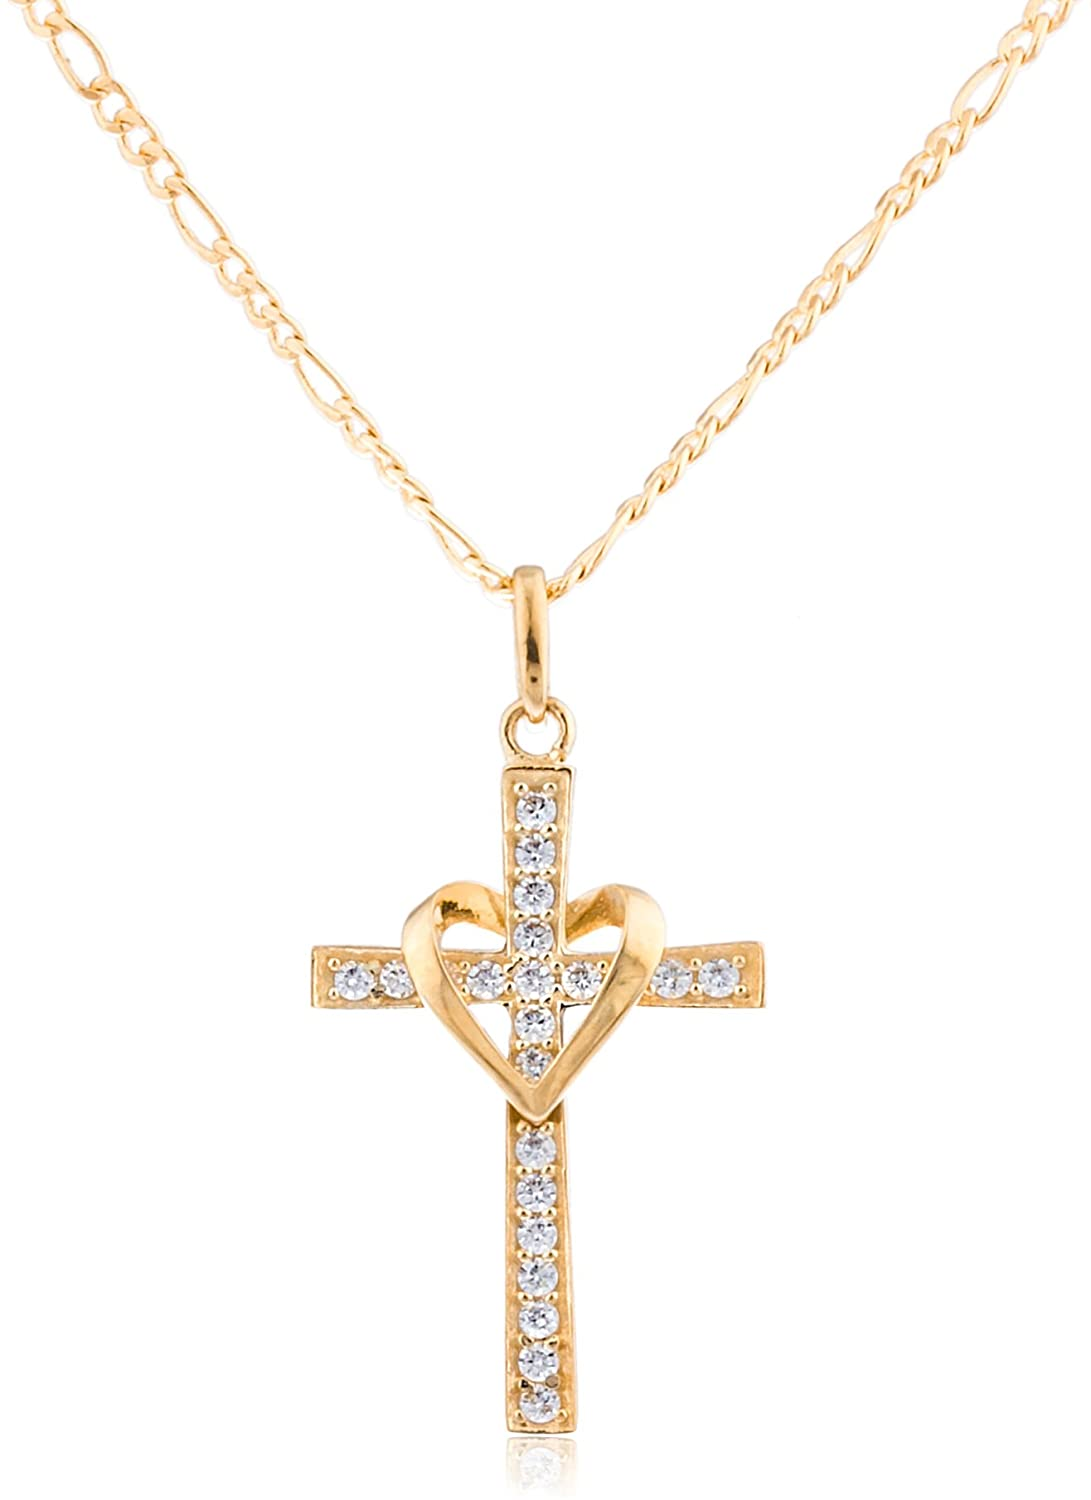 Amazon 10k yellow gold heart cross pendant with an 18 inch amazon 10k yellow gold heart cross pendant with an 18 inch gold overlay figaro necklace go 649 jewelry aloadofball Image collections